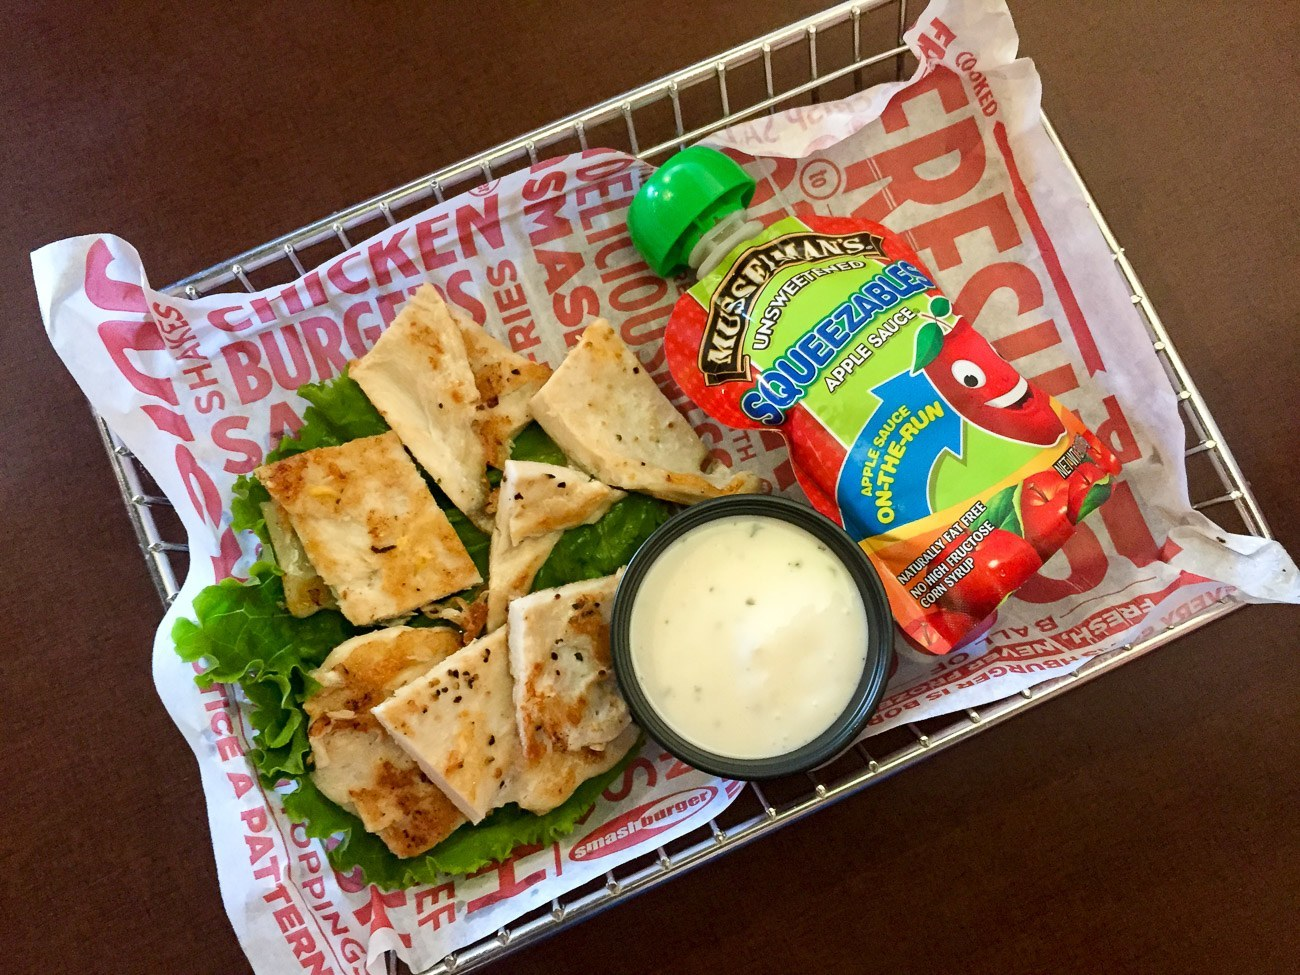 Smashburger kids' meal with grilled chicken strips and applesauce